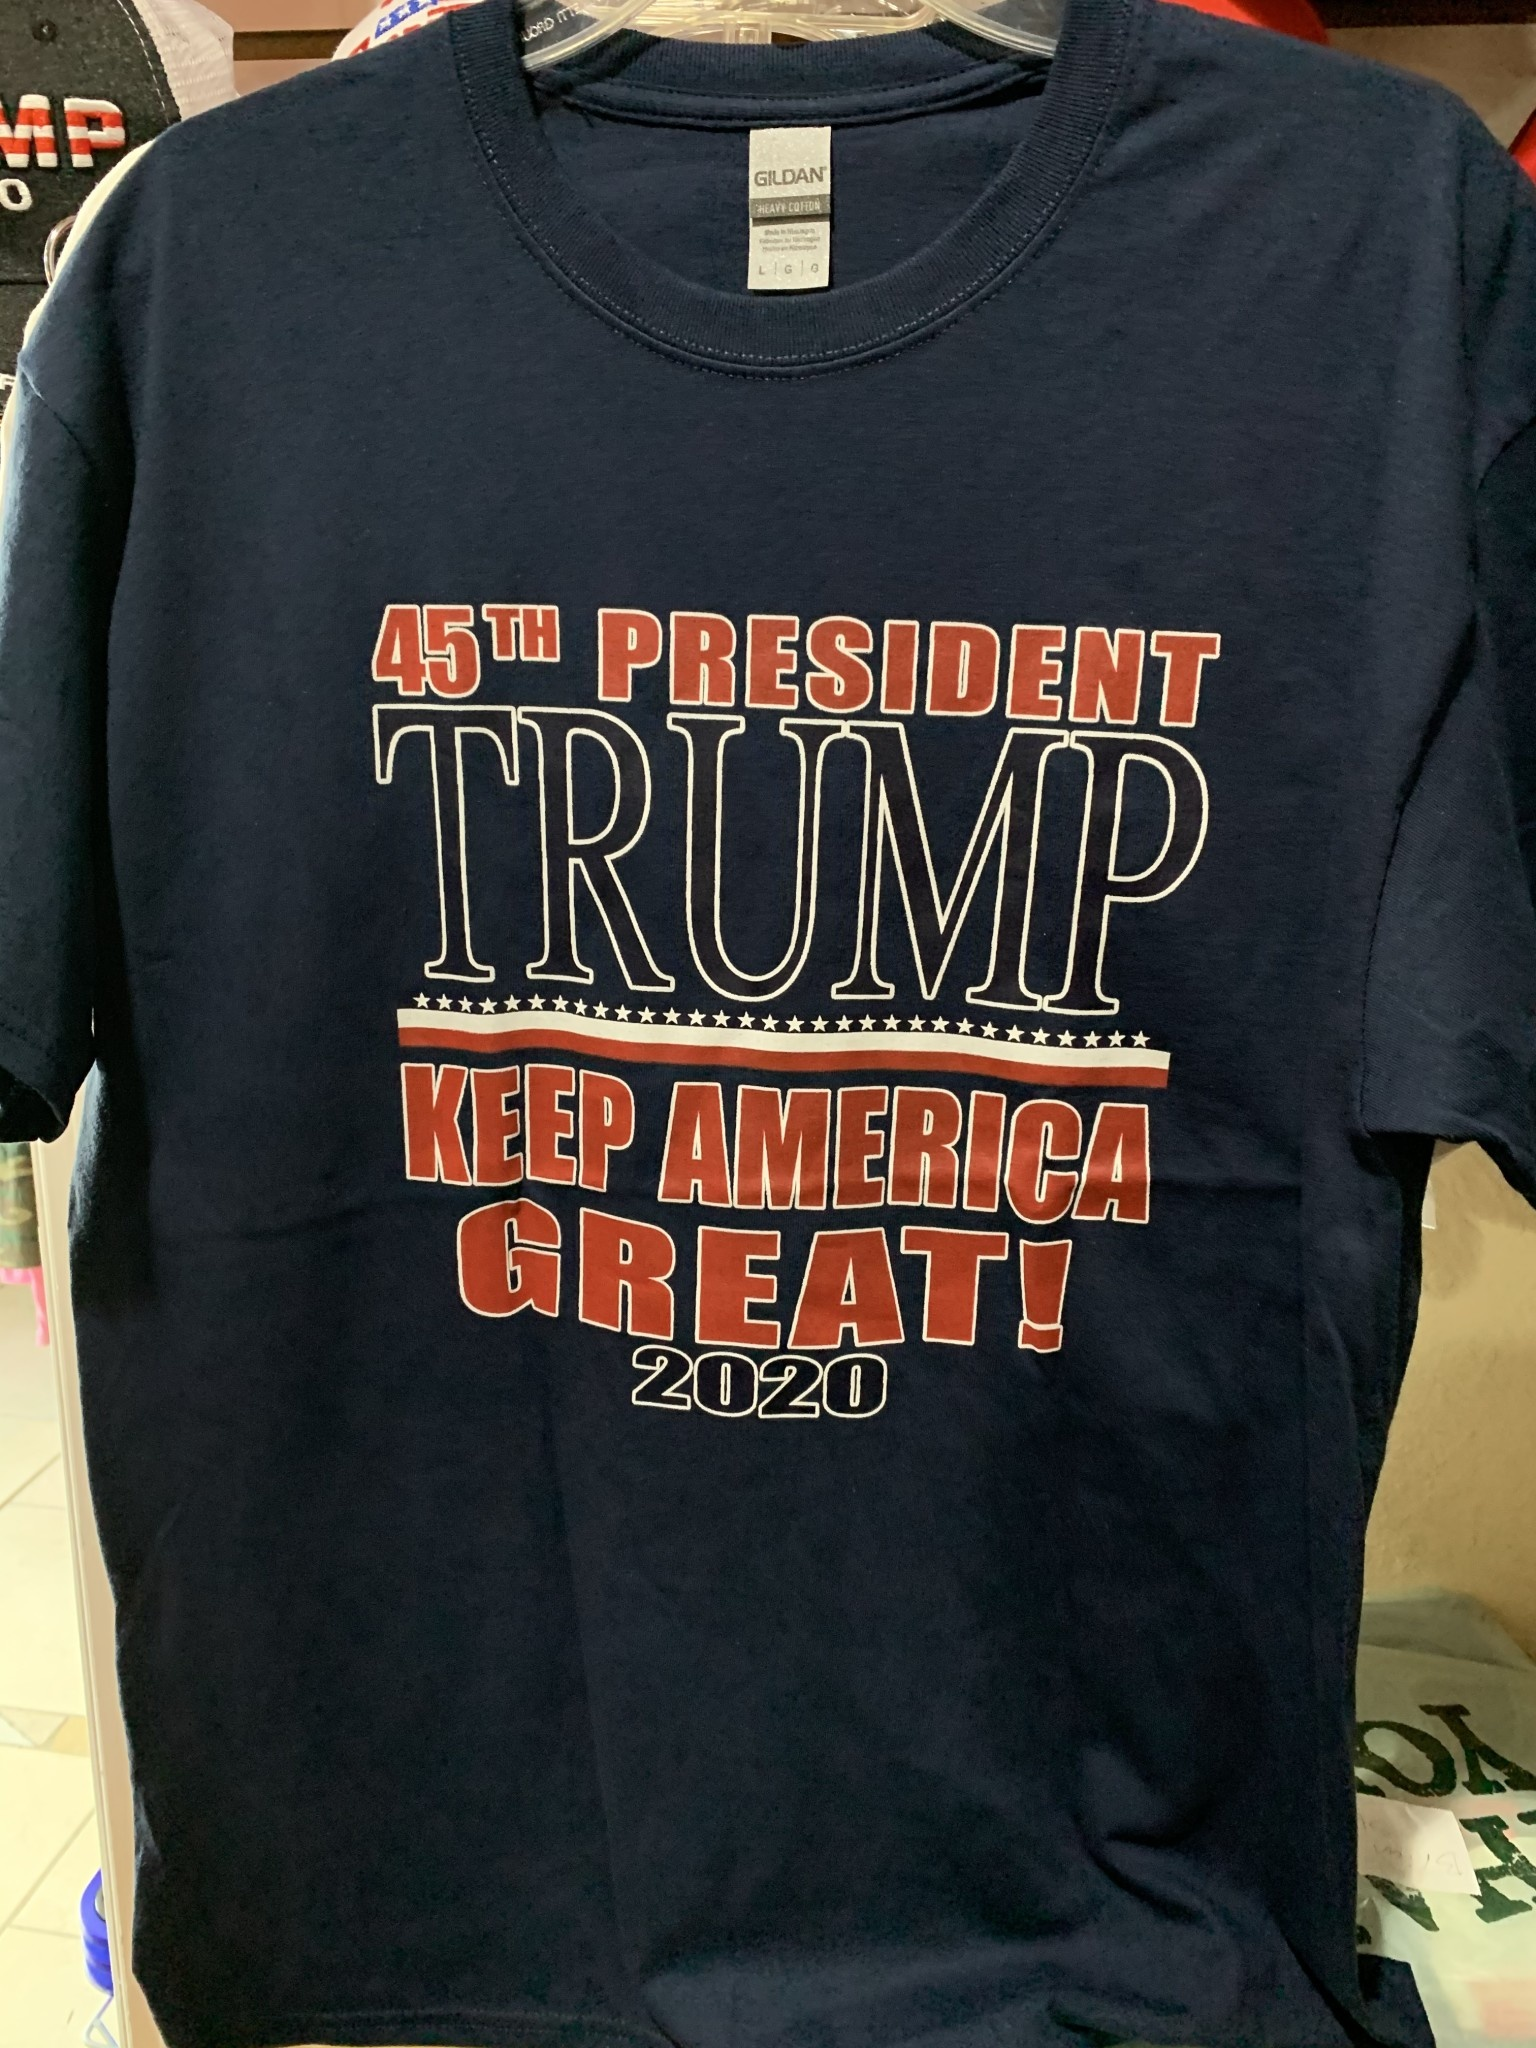 45th President Trump Keep America Great T-Shirt